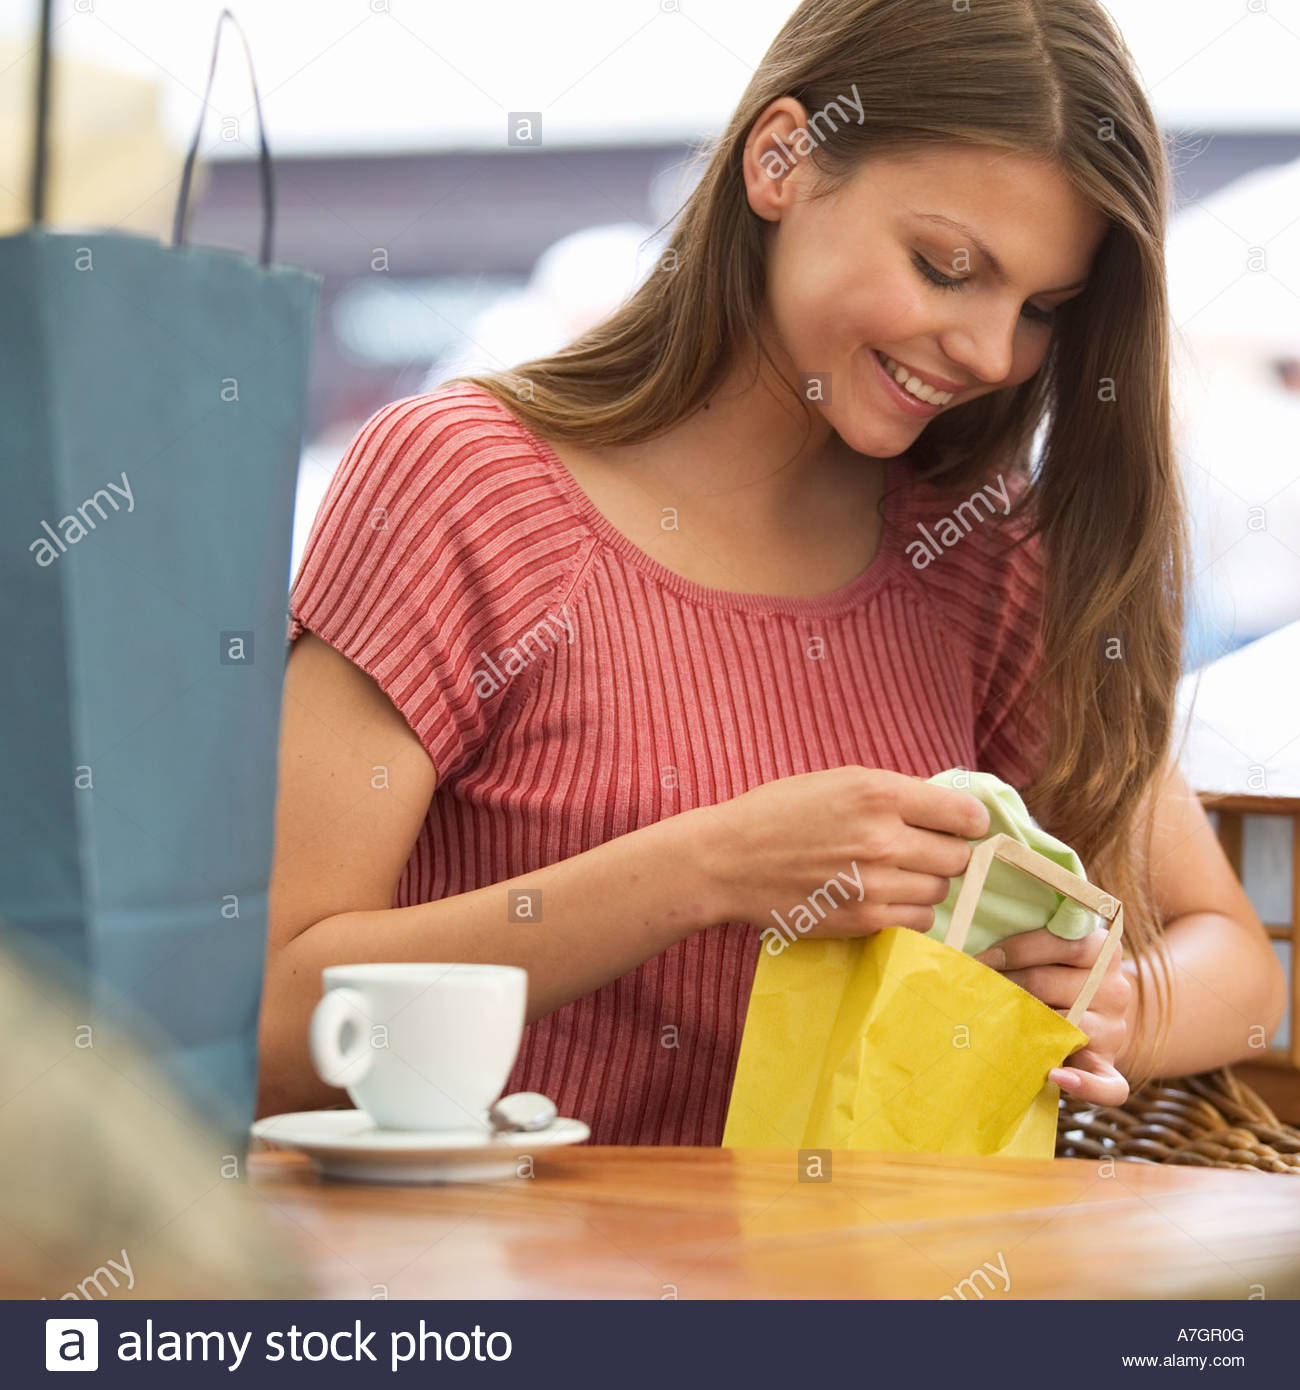 A young woman looking at her purchases - Stock Image